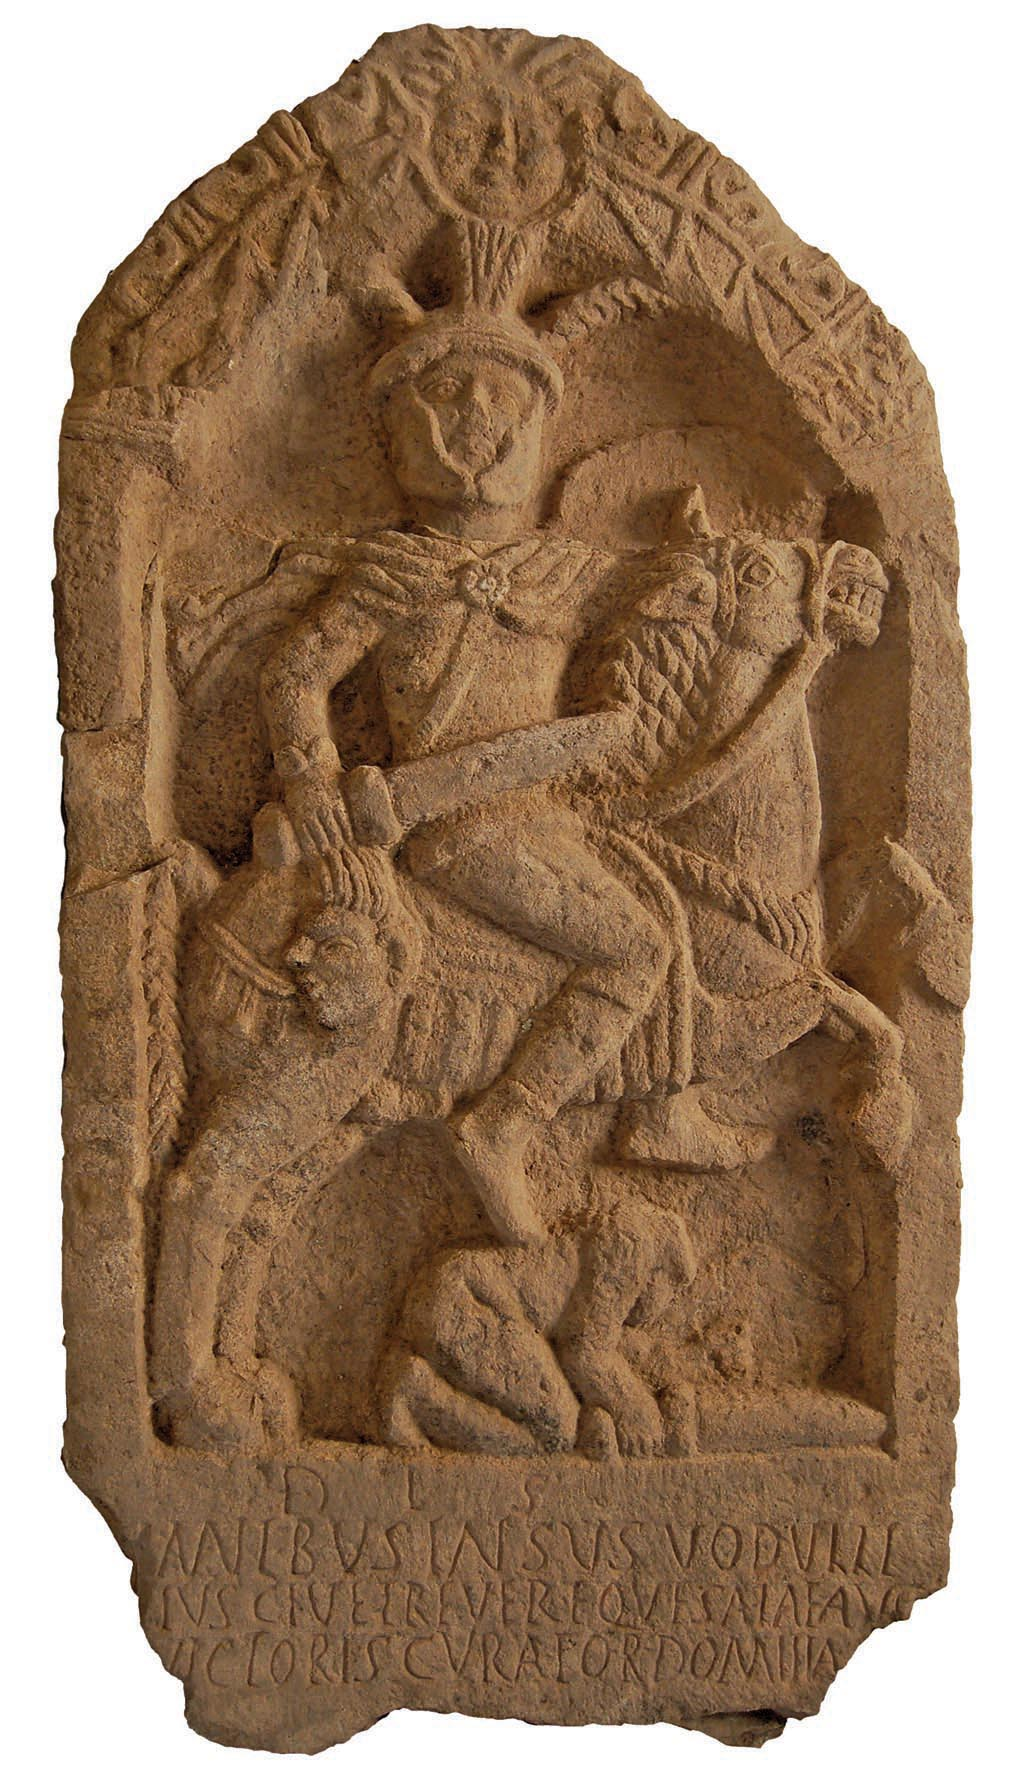 Roman gravestone showing a soldier Insus holding the severed head of a barbarian,cr. 100 AD, discovered in Lancashire, UK